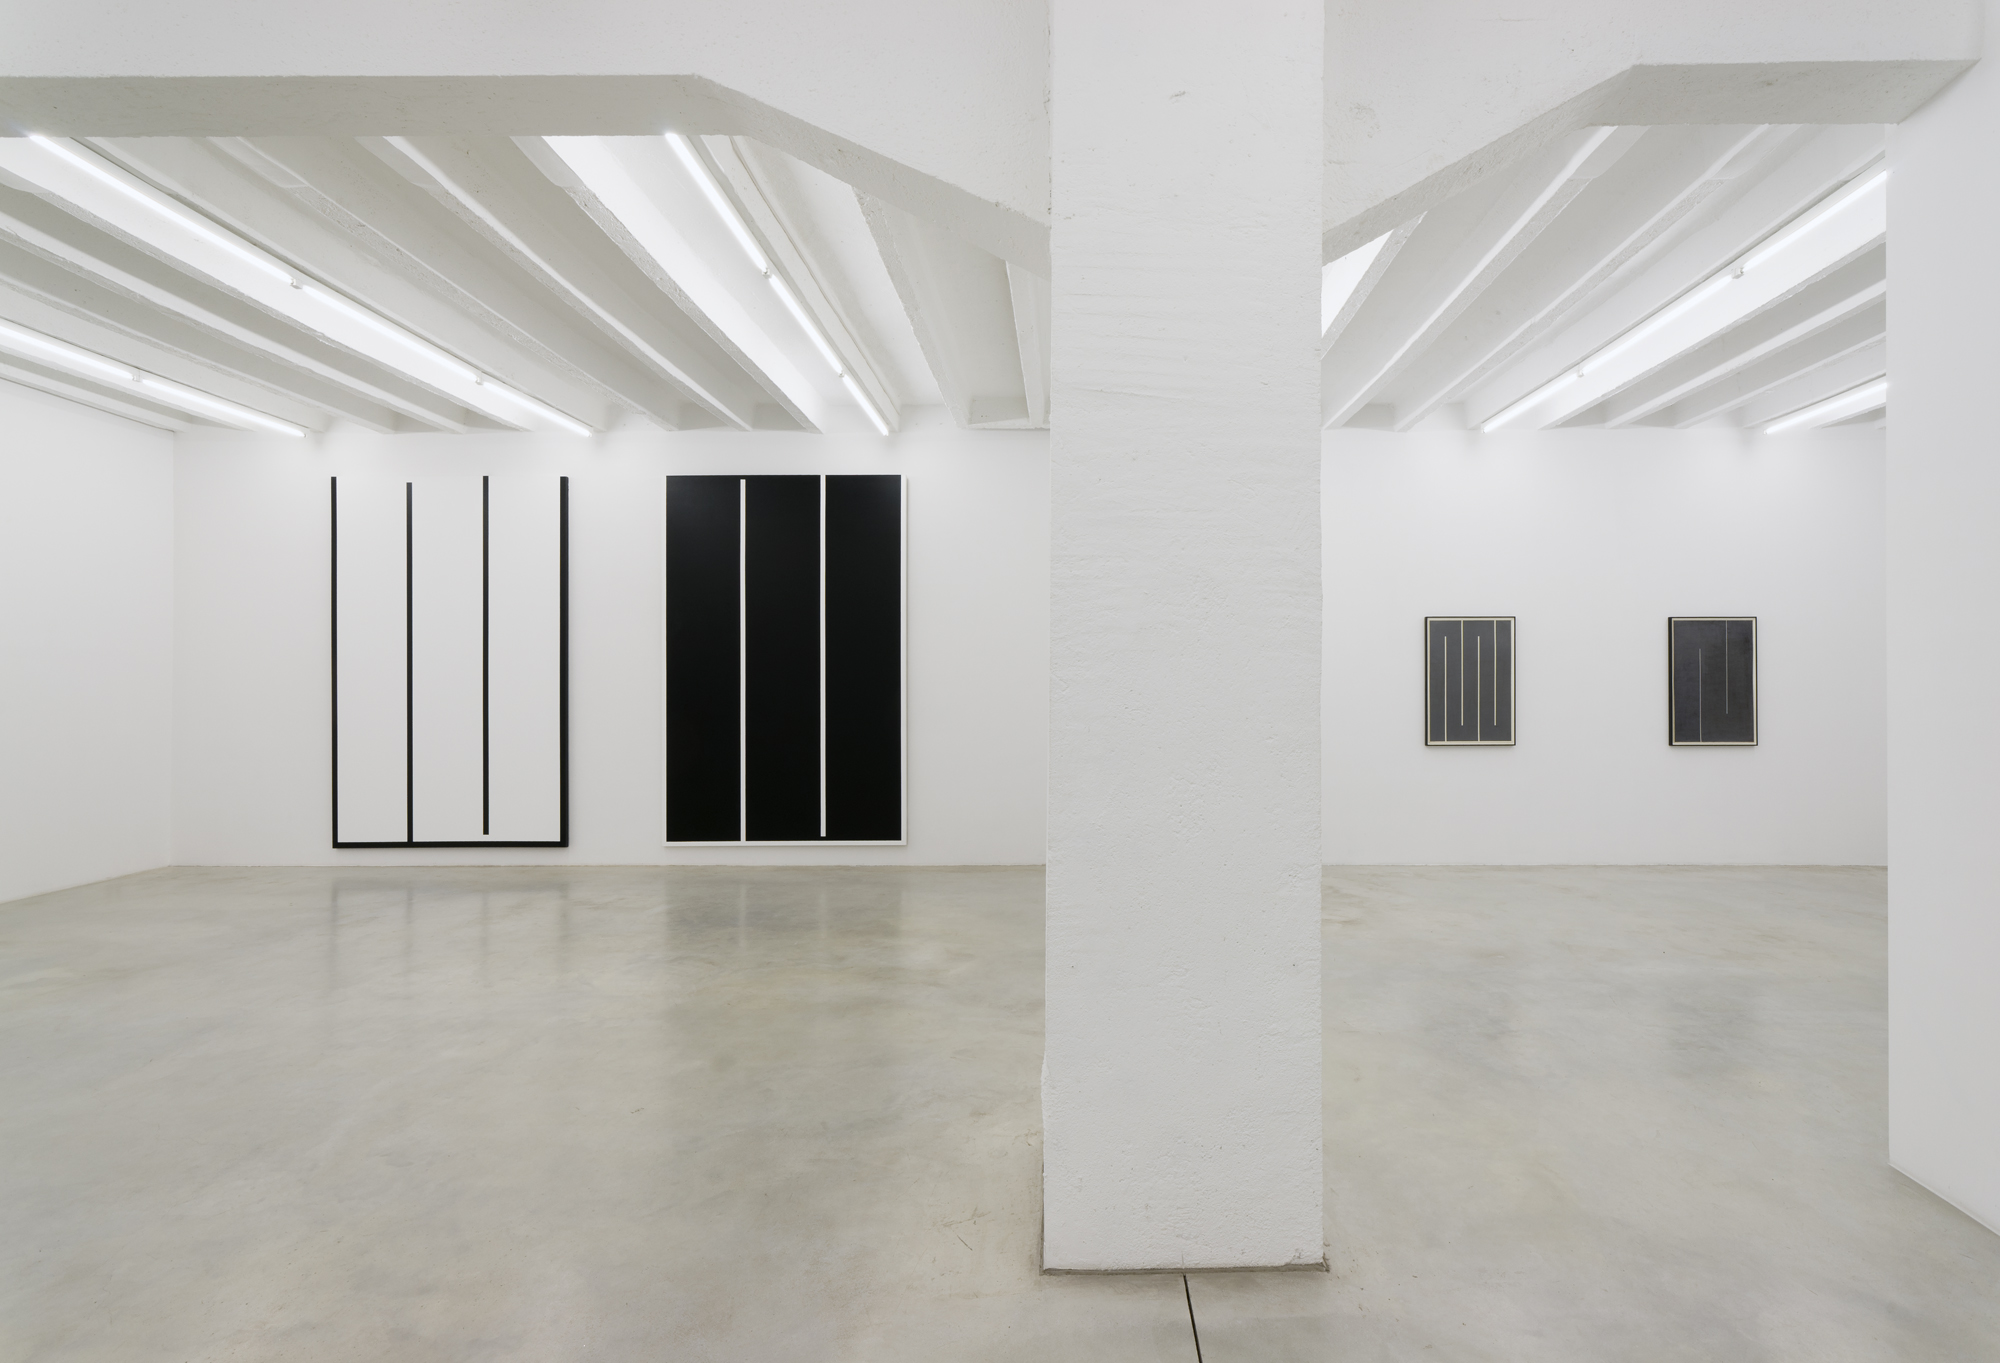 Julije Knifer, Elements, exhibition view, Galerija Gregor Podnar, Berlin, 2016. Photo: Marcus Schneider